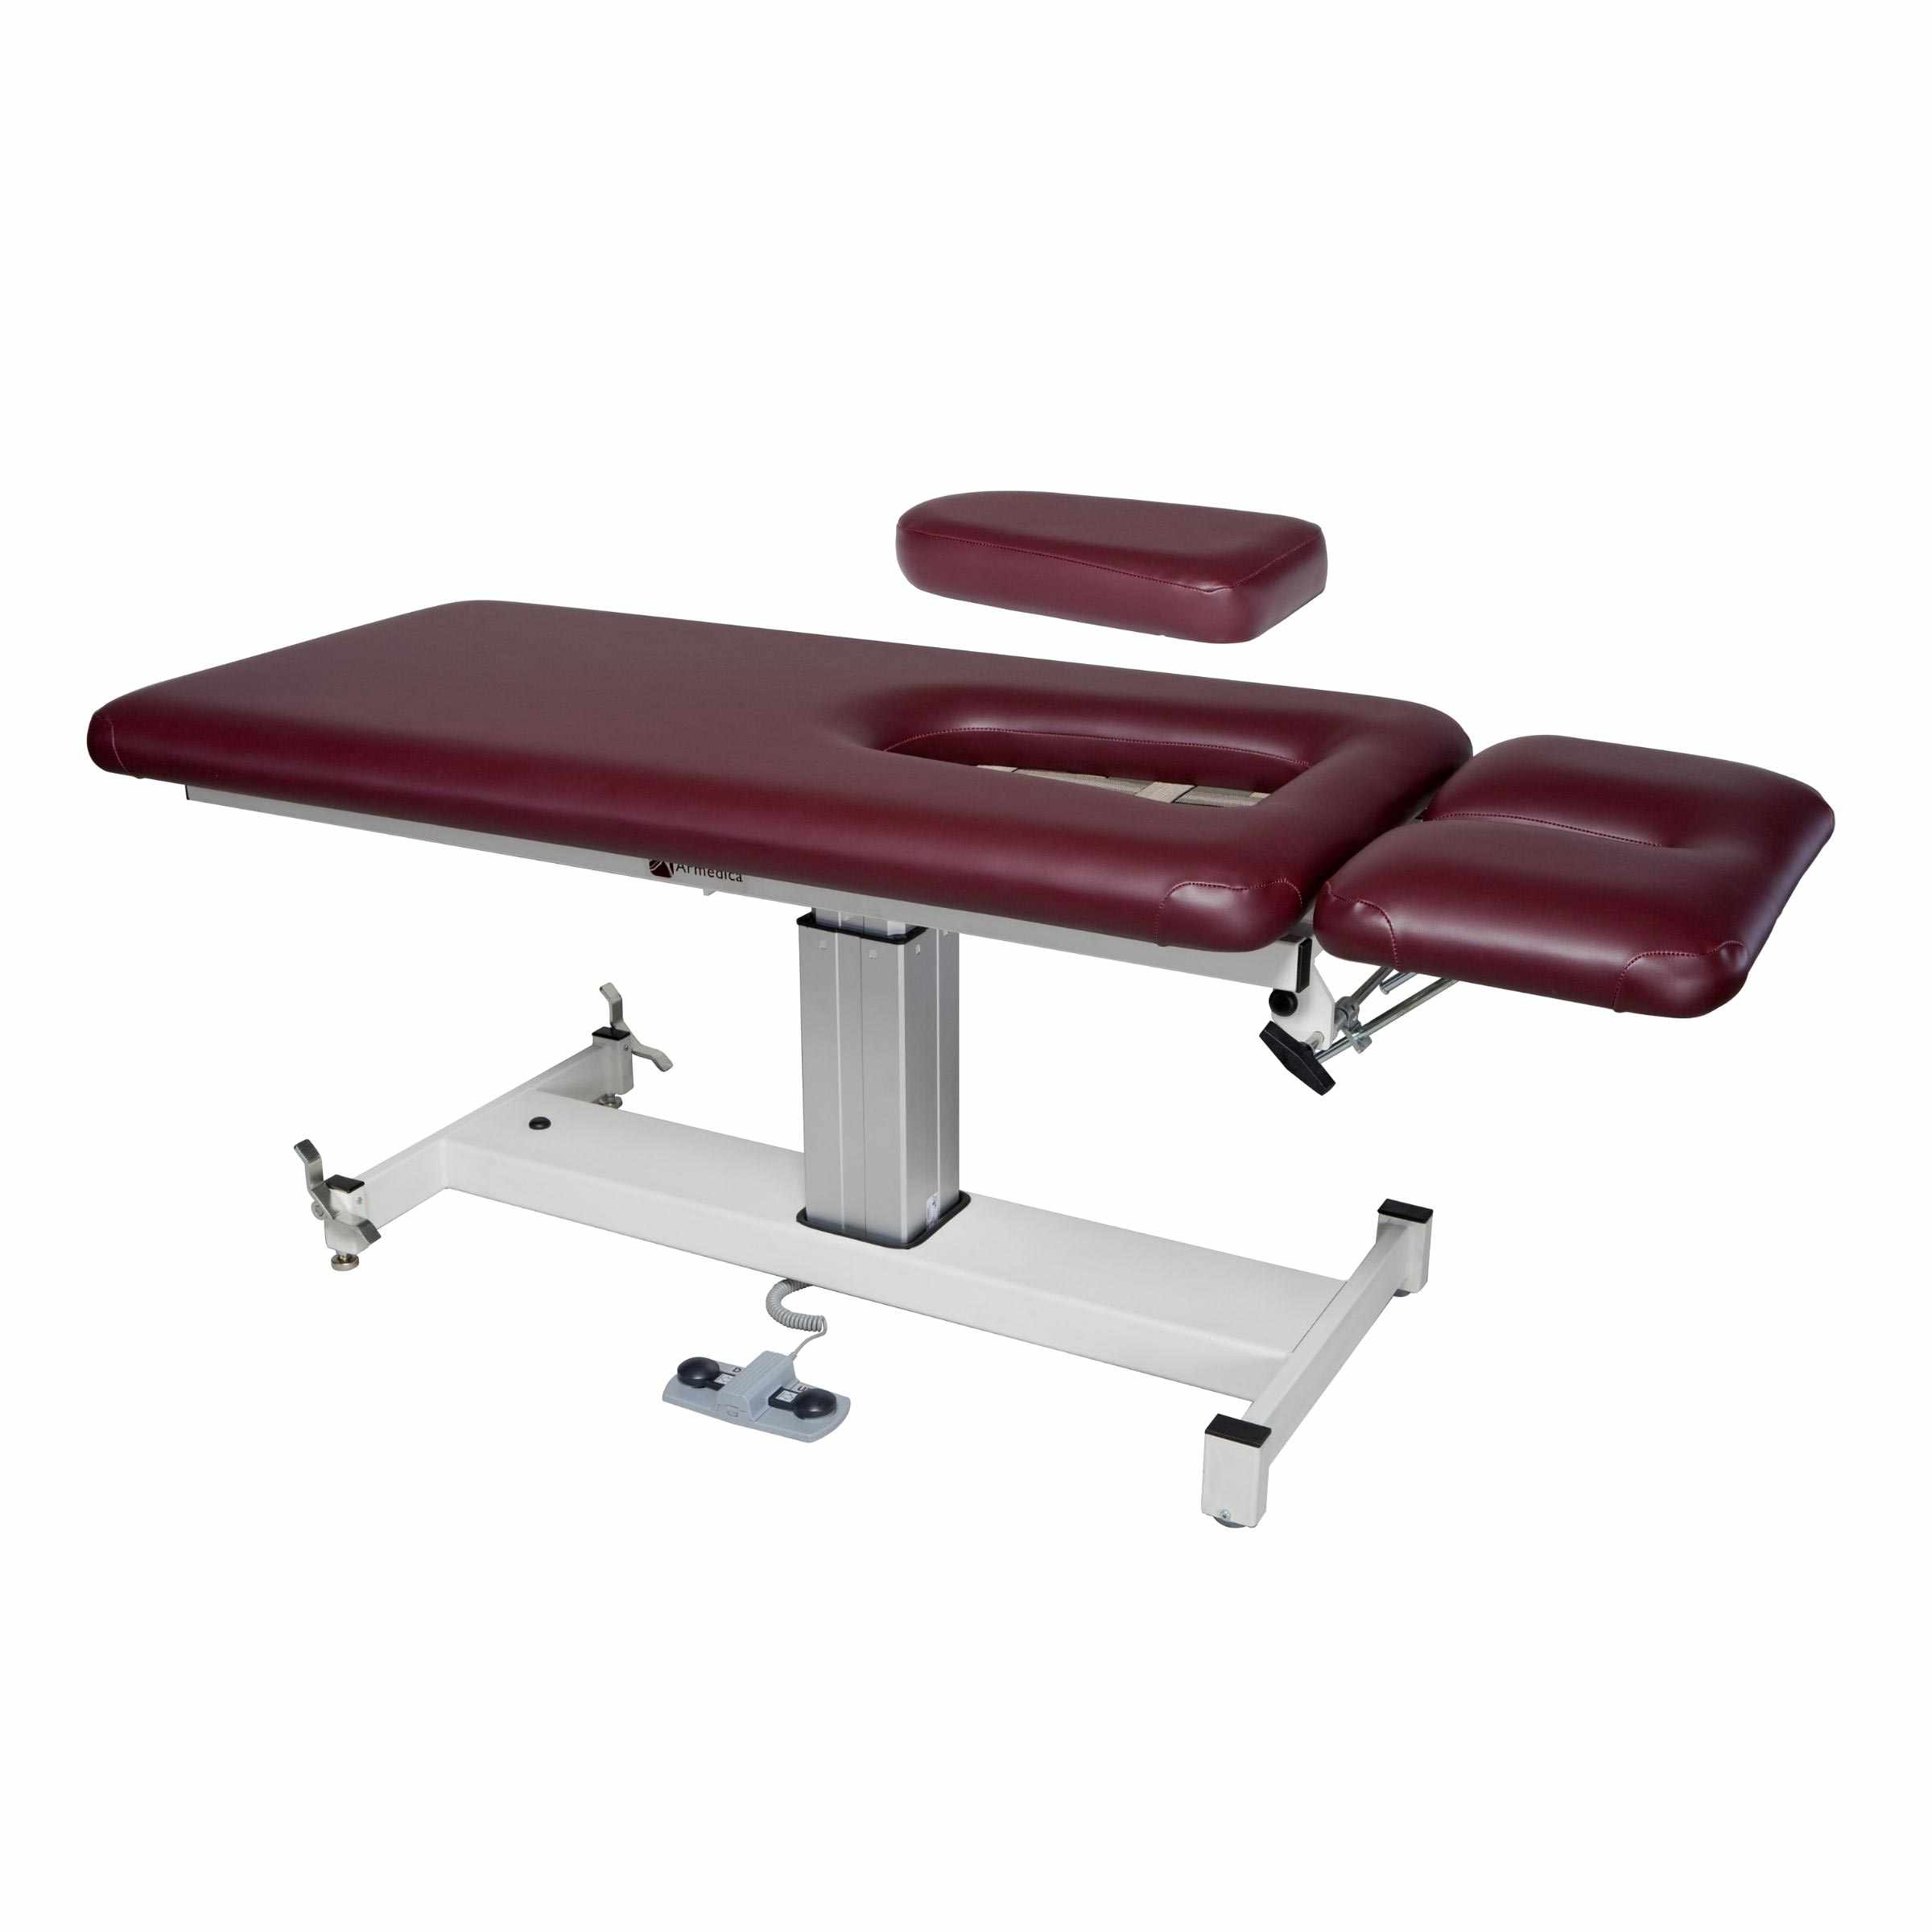 Armedica AM-SP 202 treatment table